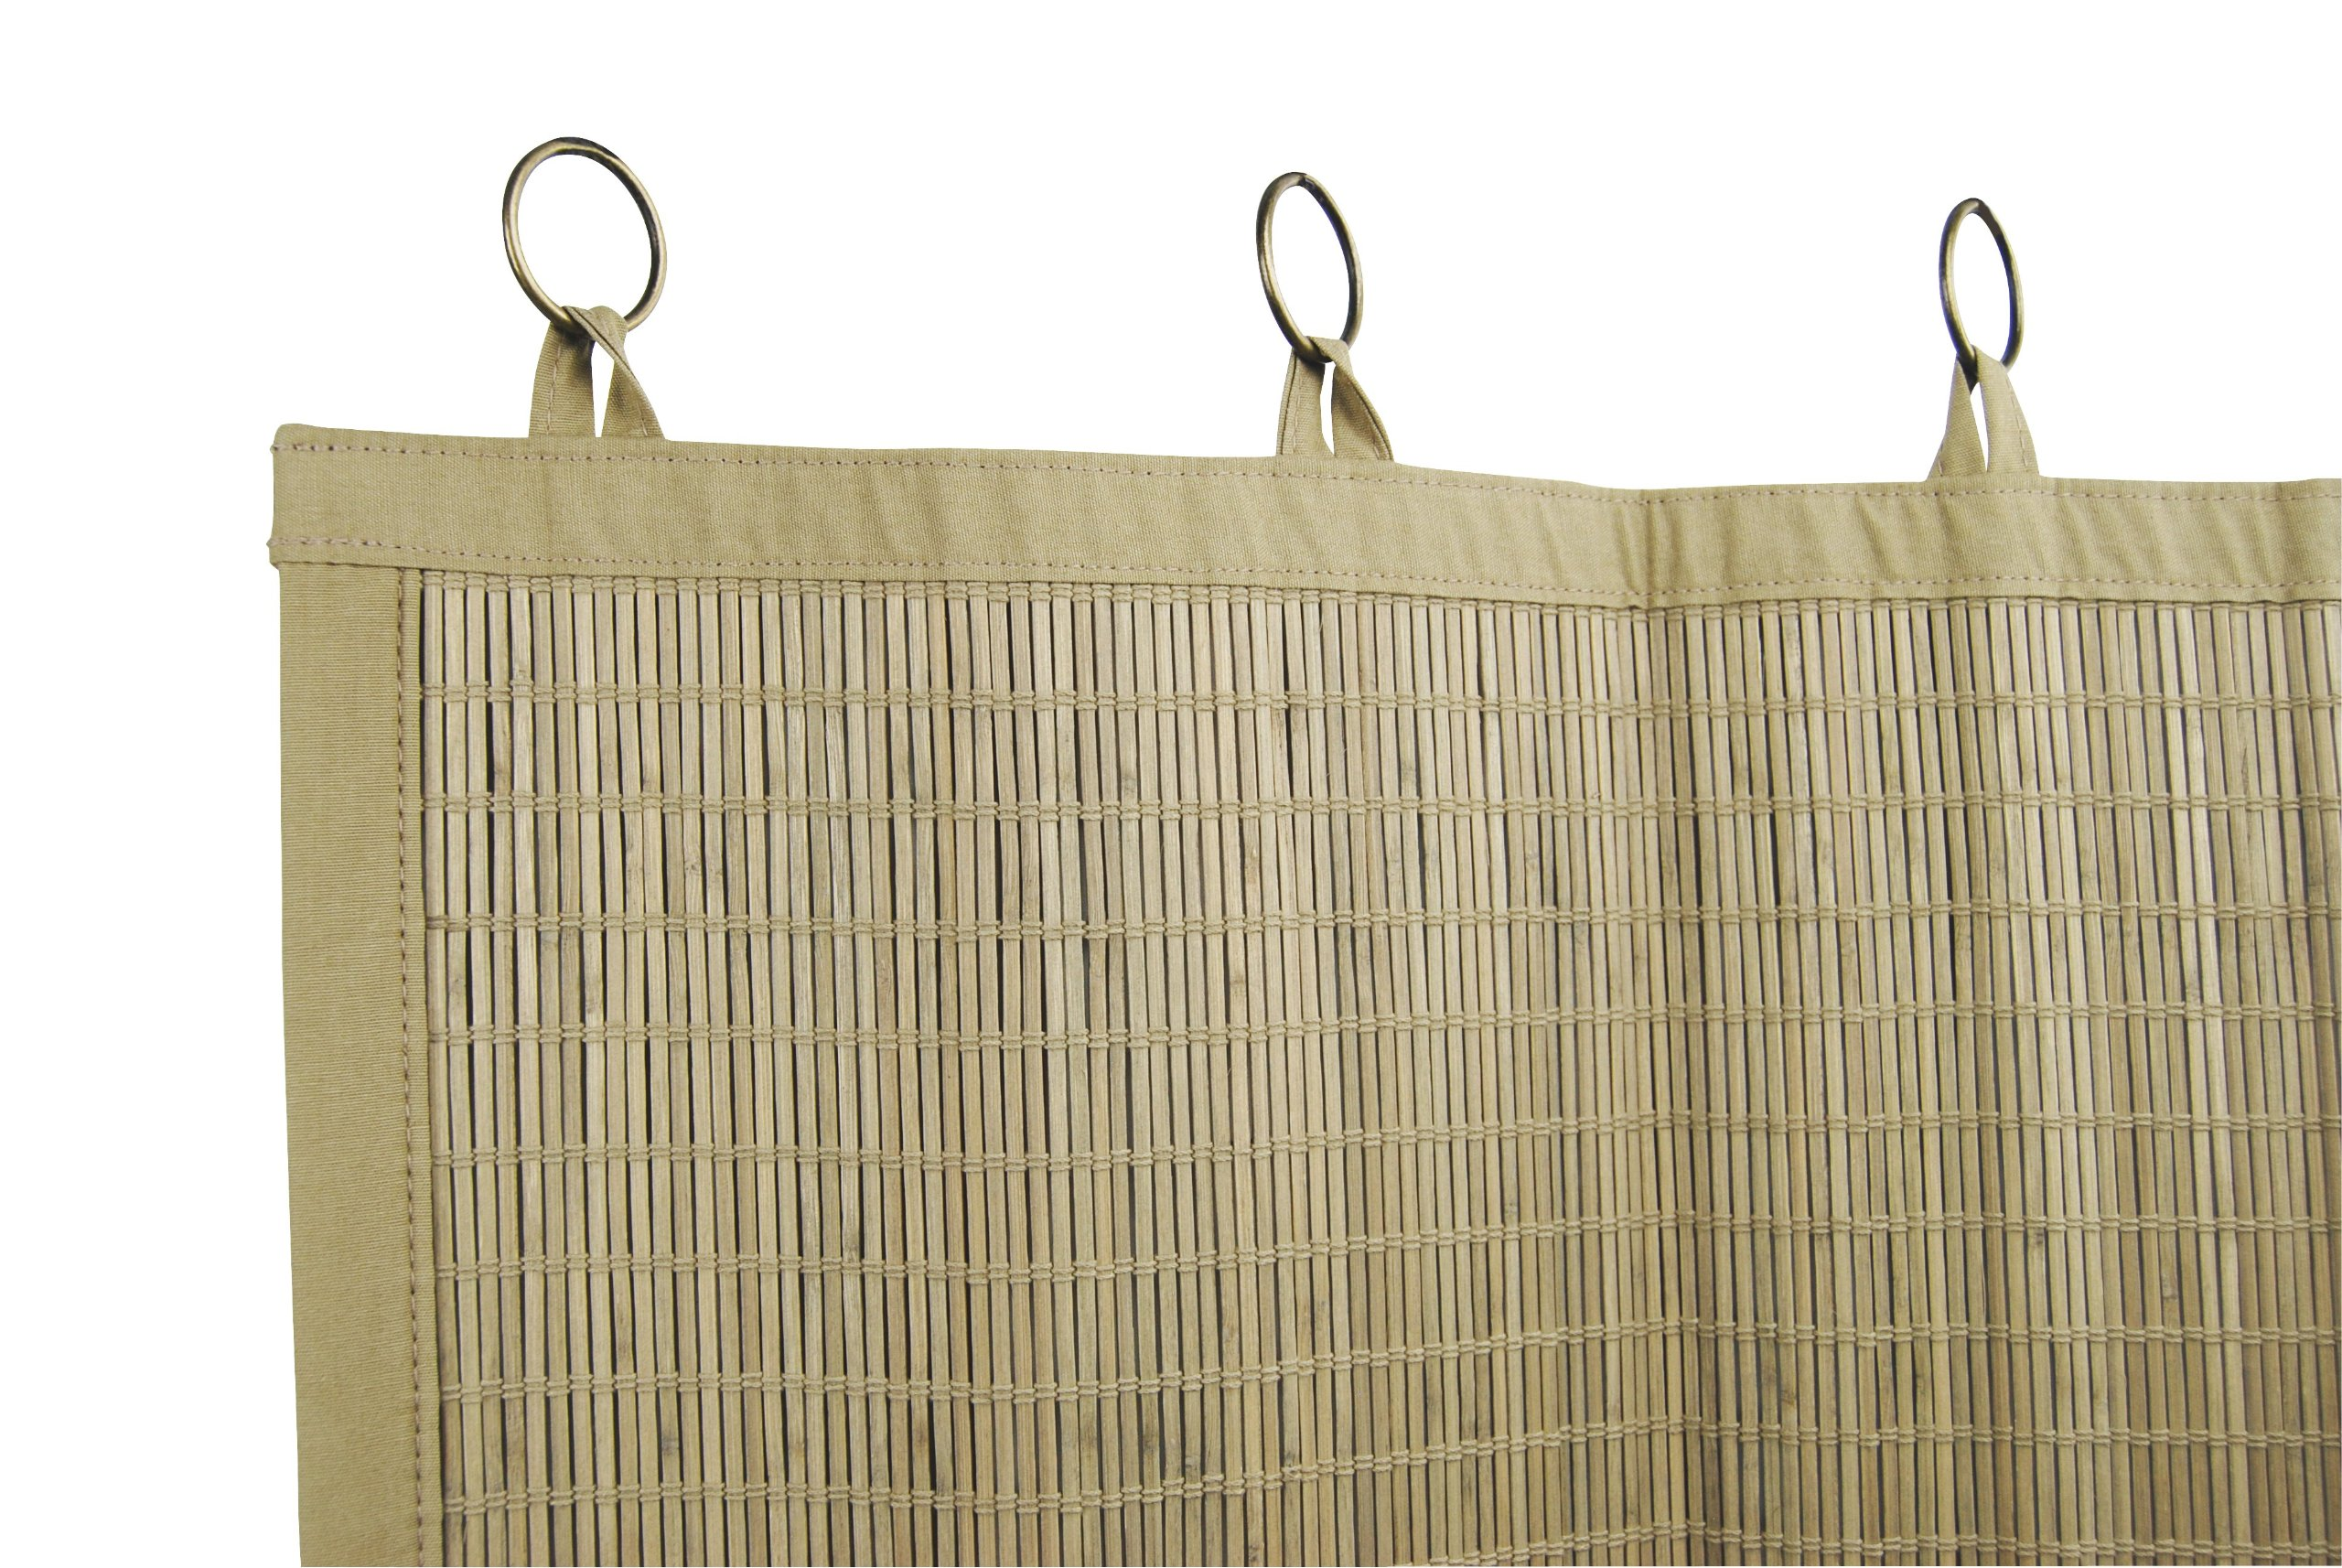 Bamboo Ring Top Curtain BRP05 2-Piece Ring Top Tier Set, 48 by 24-Inch, Driftwood by Bamboo (Image #3)